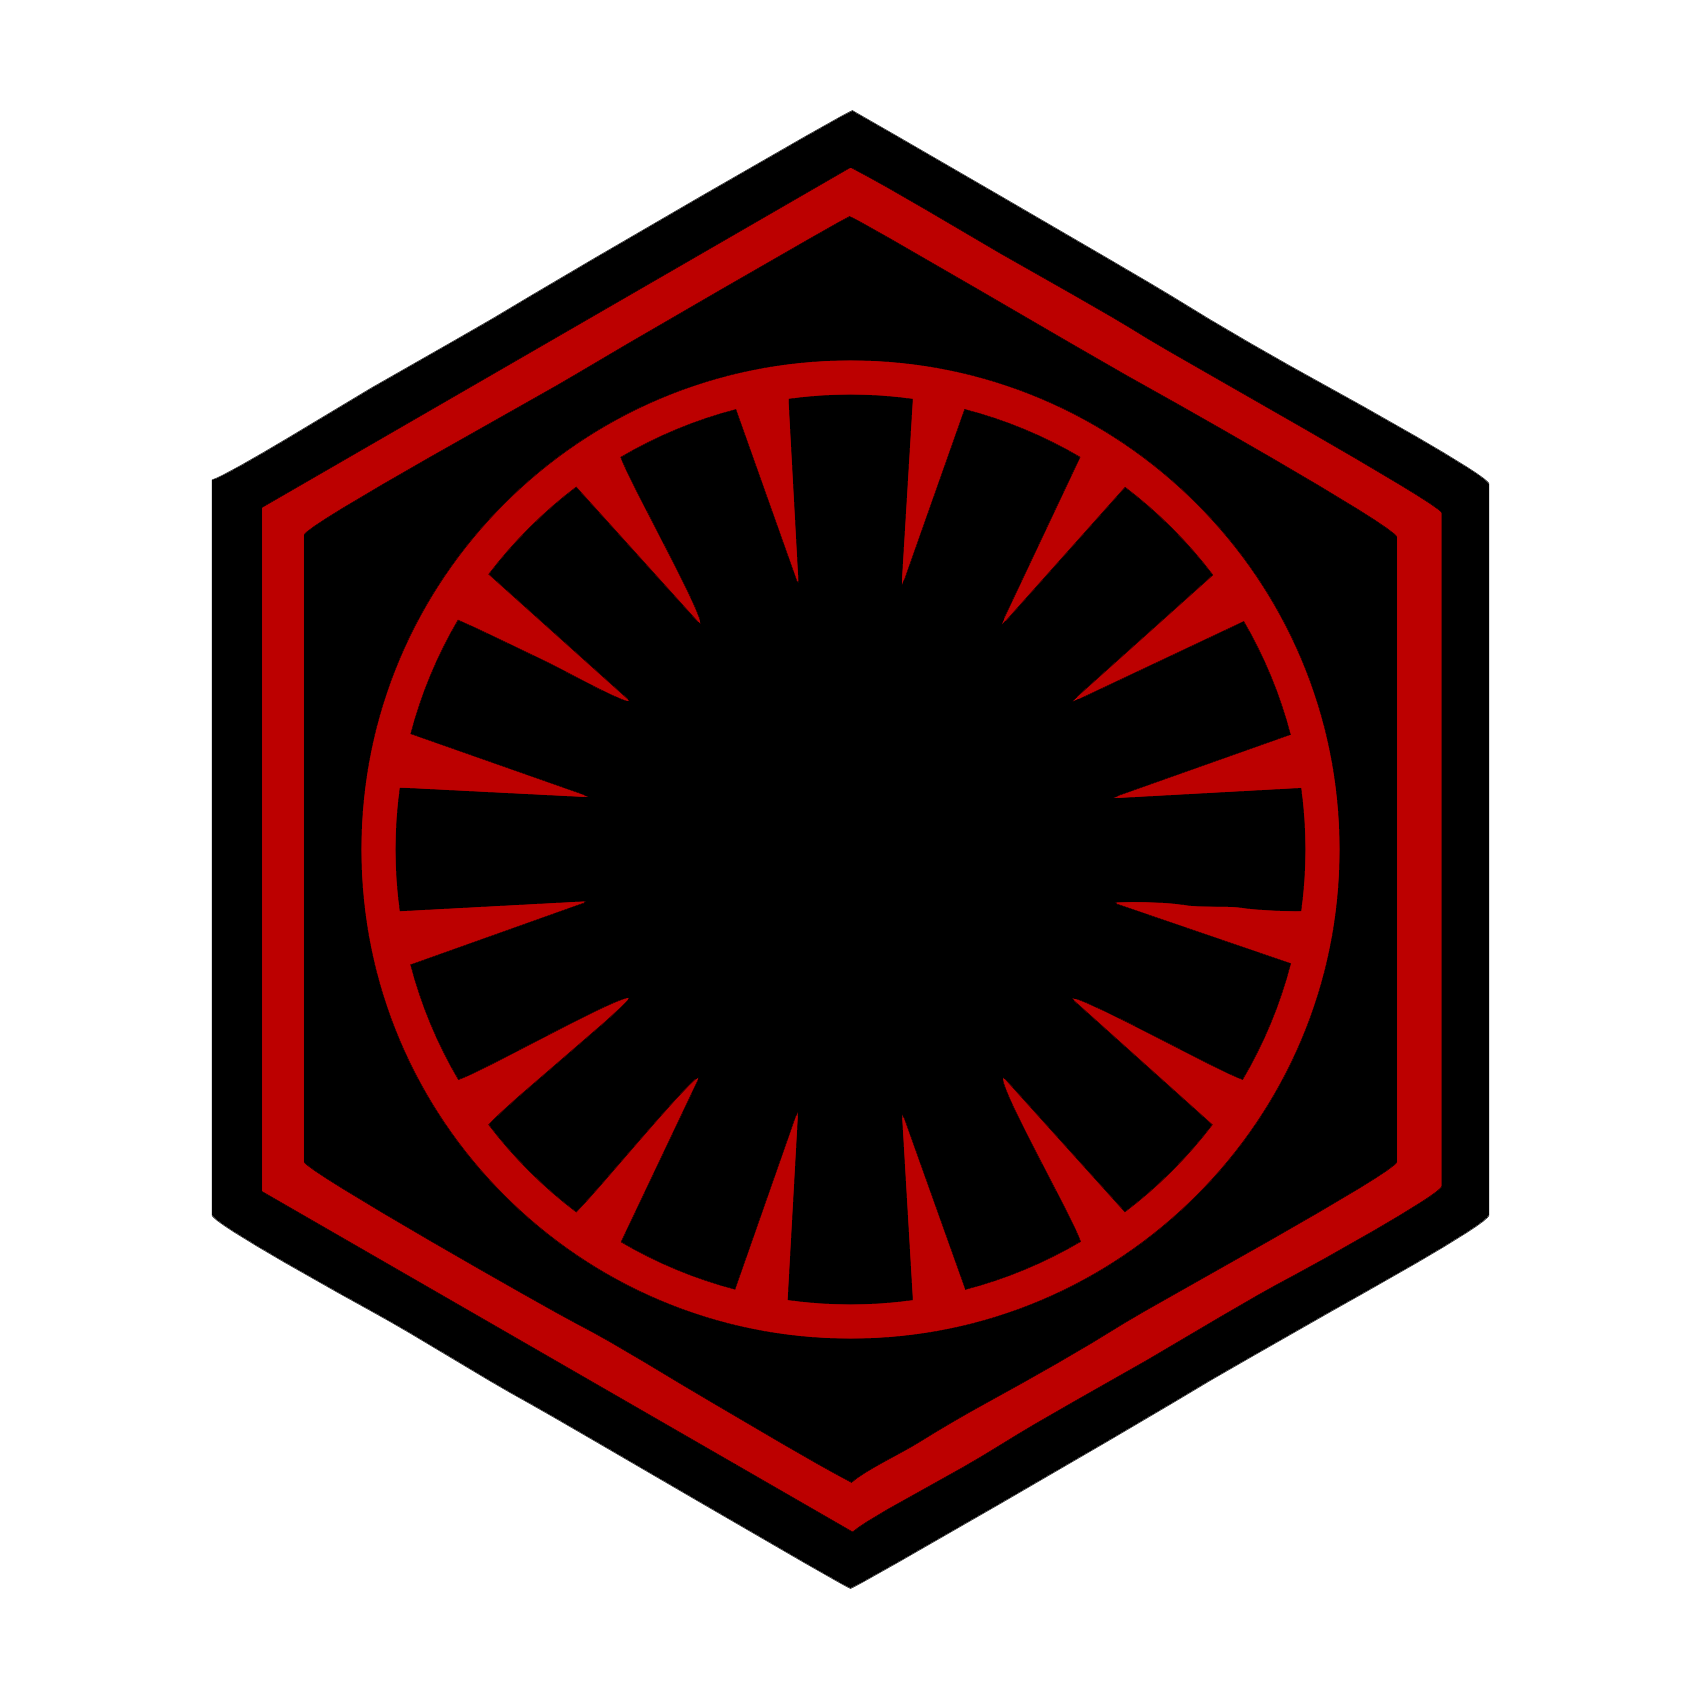 emblem_of_the_first_order__alternate__by_redrich1917-d9l66m2.png